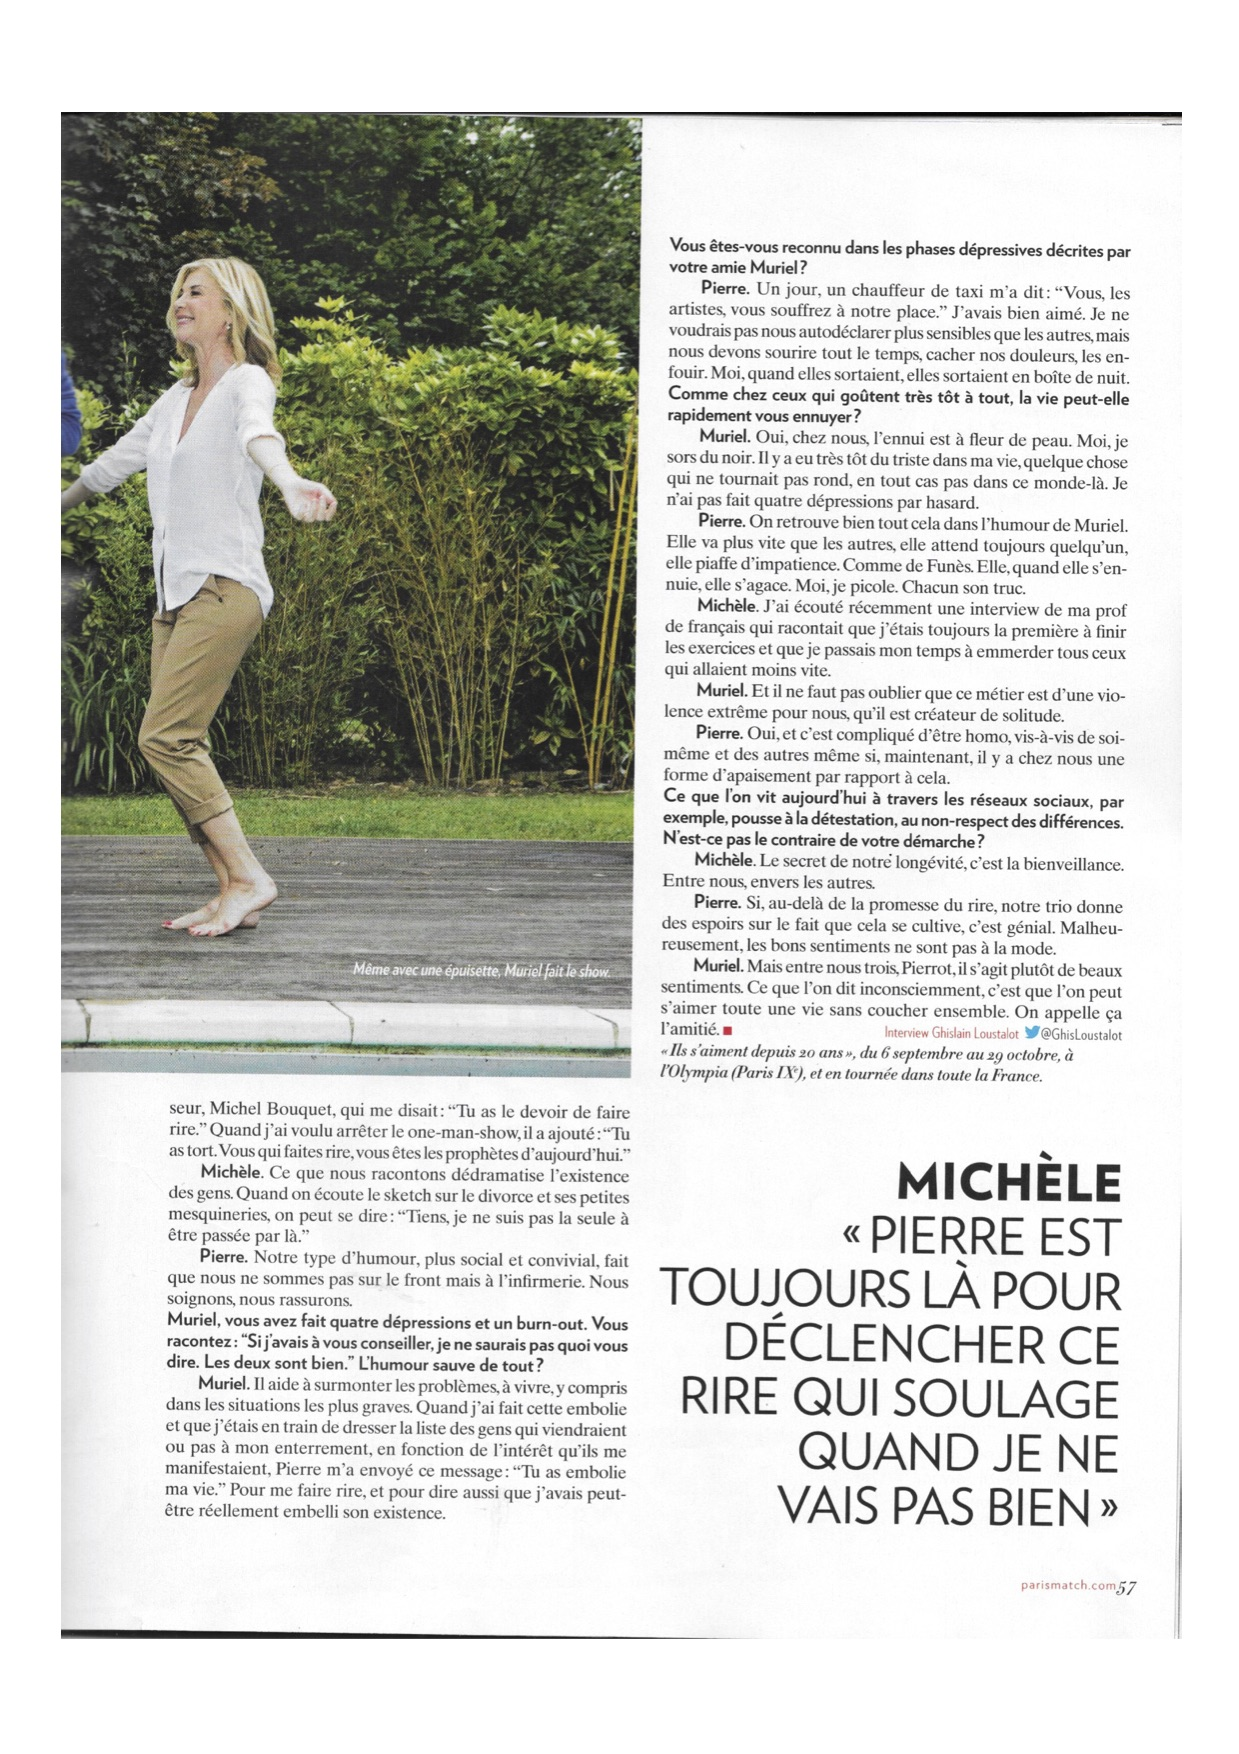 Paris Match 23.06.16 p7